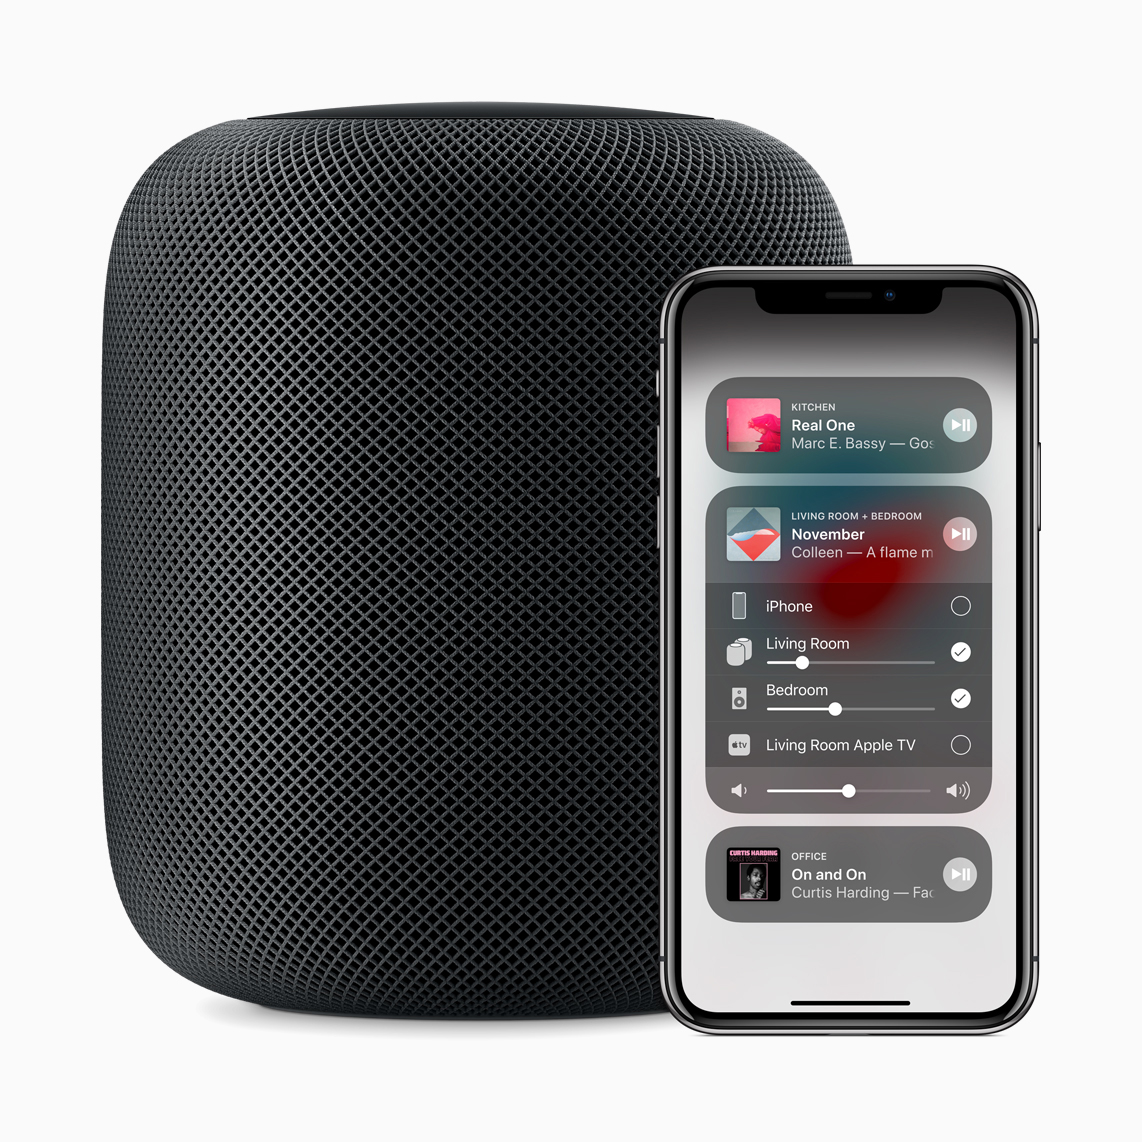 HomePod also helps Apple push its music streaming service